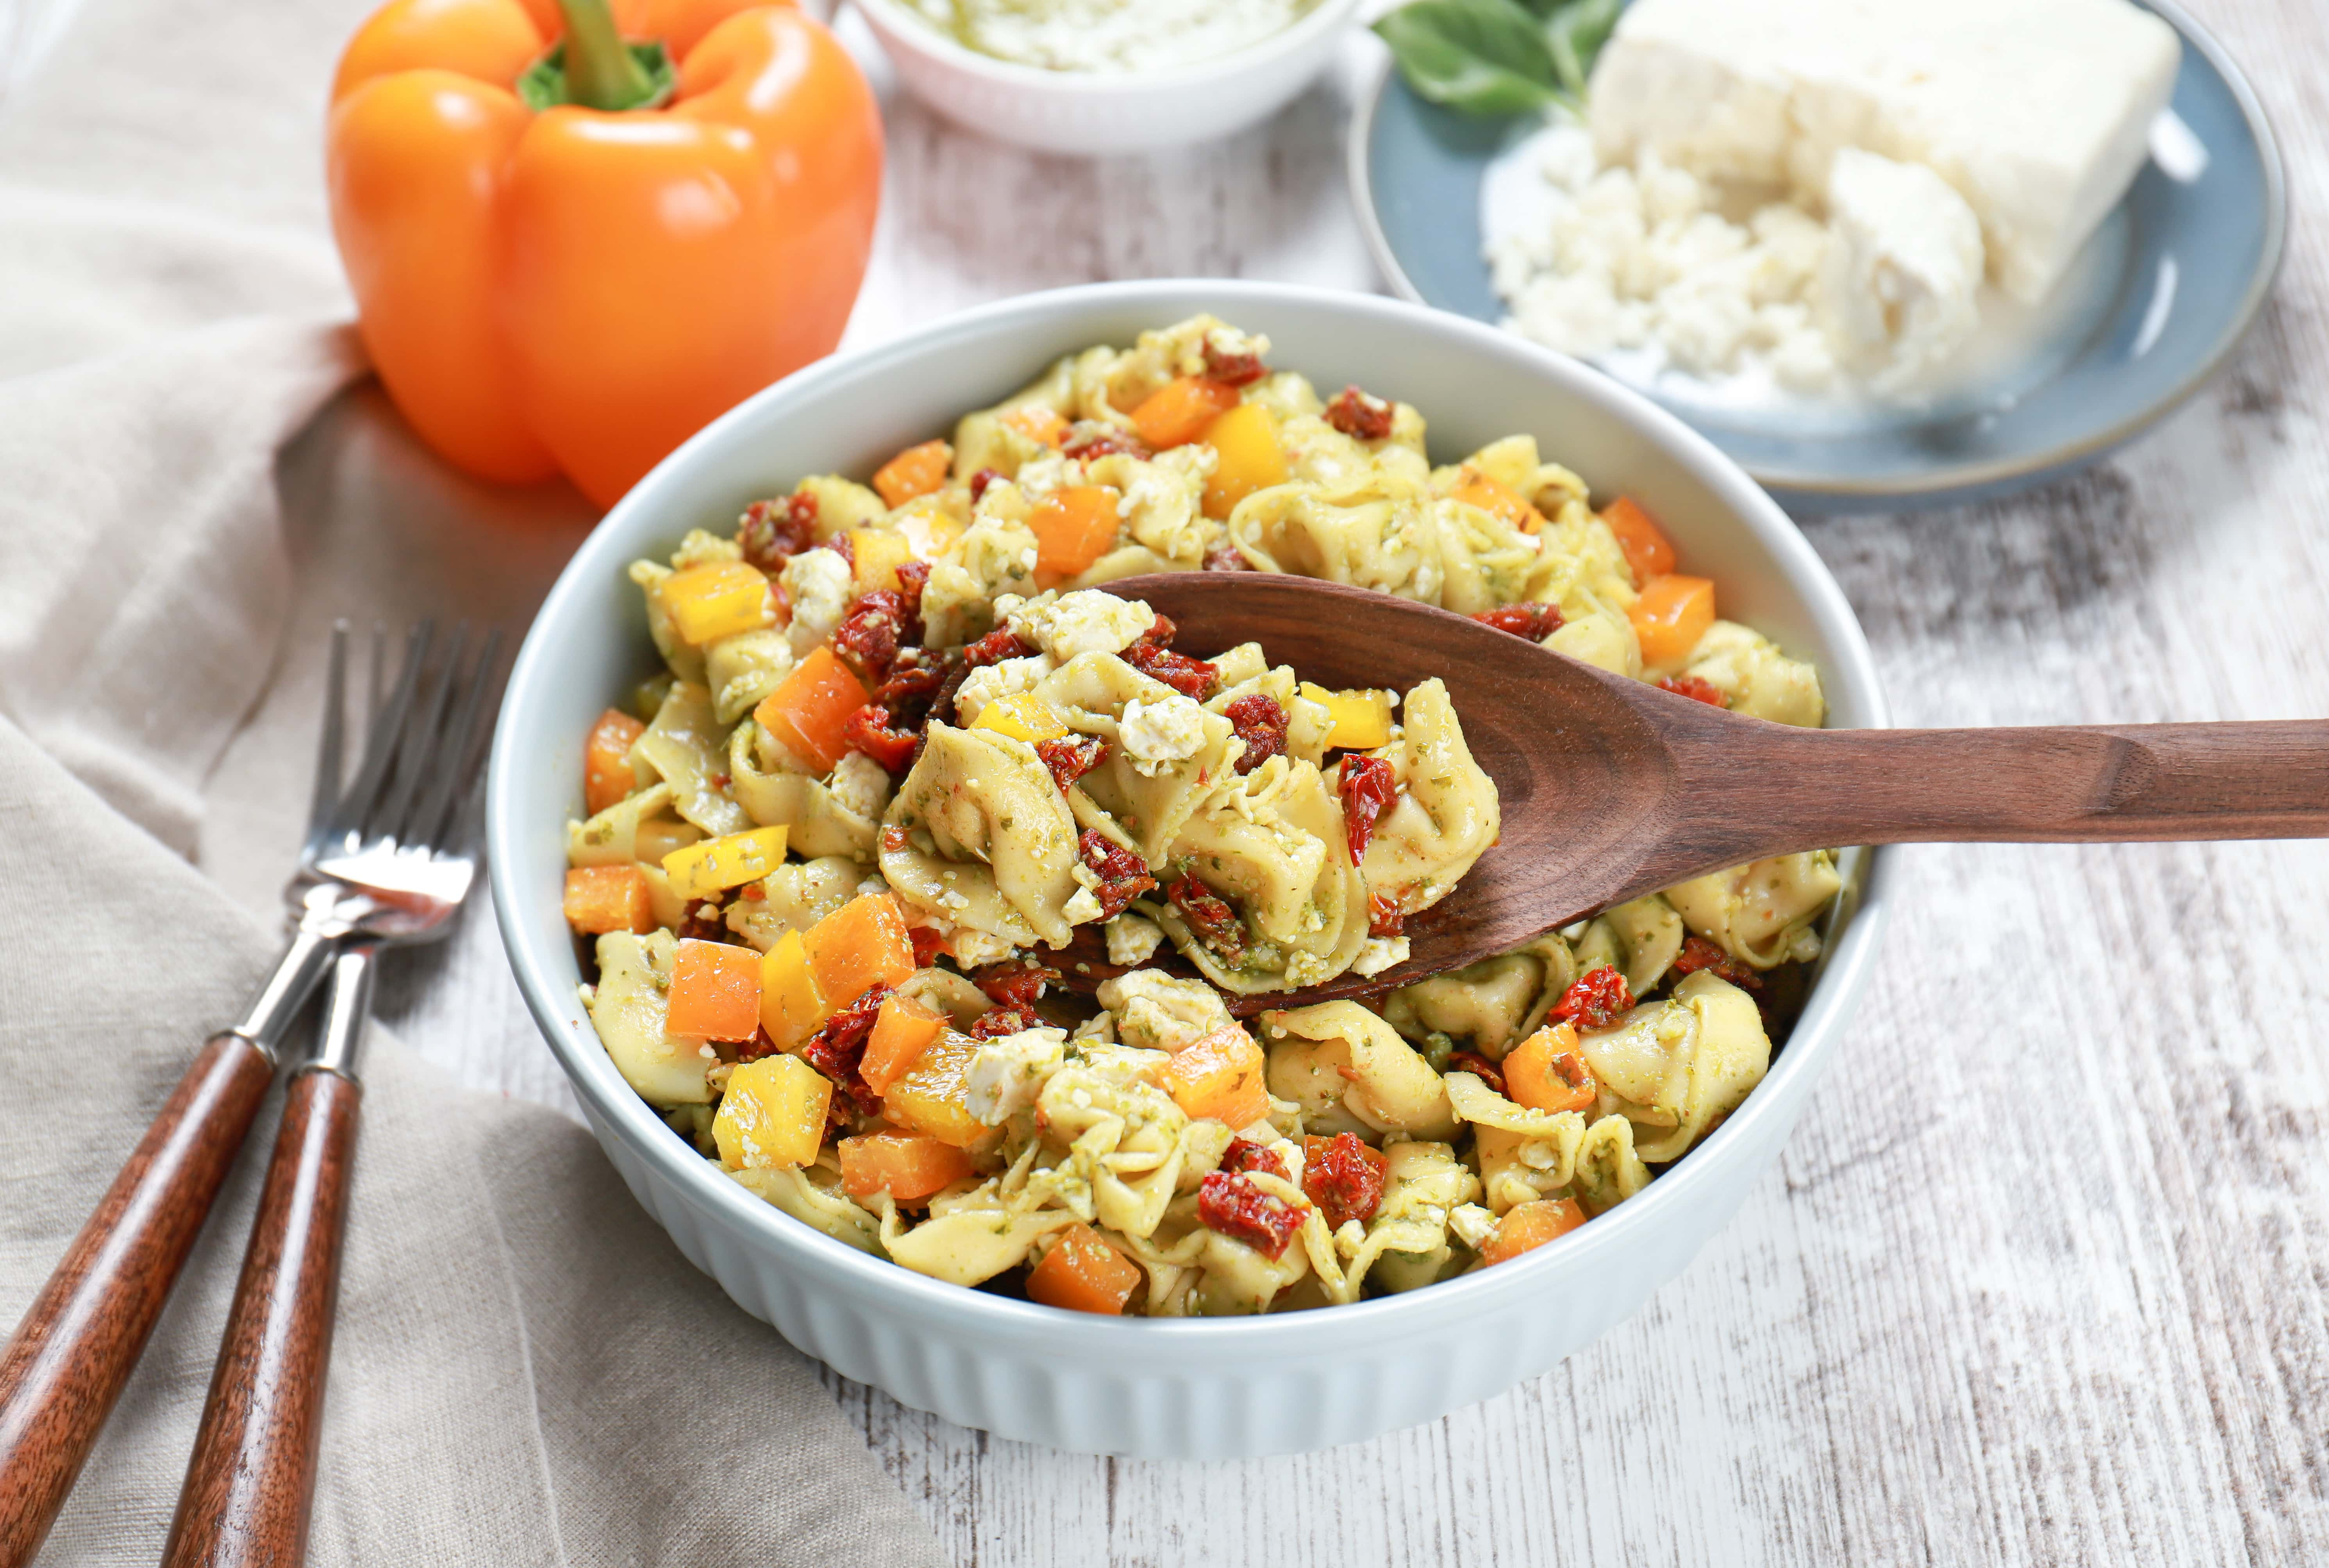 Above view of a wooden spoon full of pesto tortellini pasta salad.